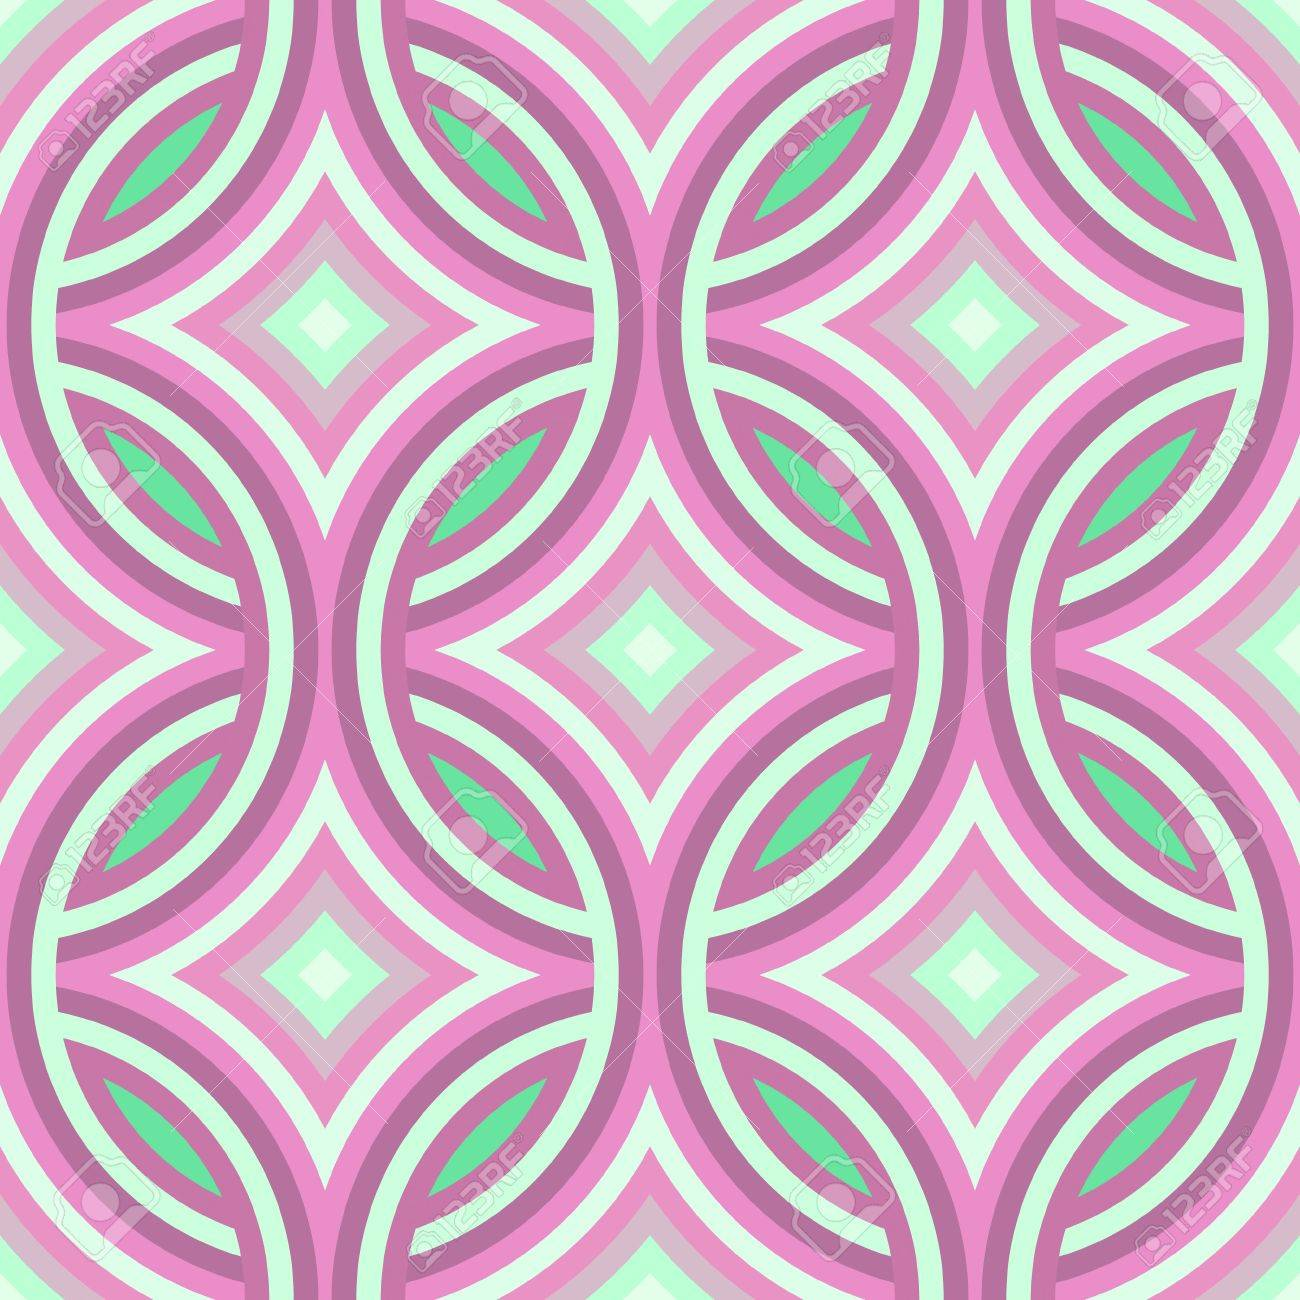 Colorful abstract retro patterns geometric design wallpaper background Stock Photo - 3730829